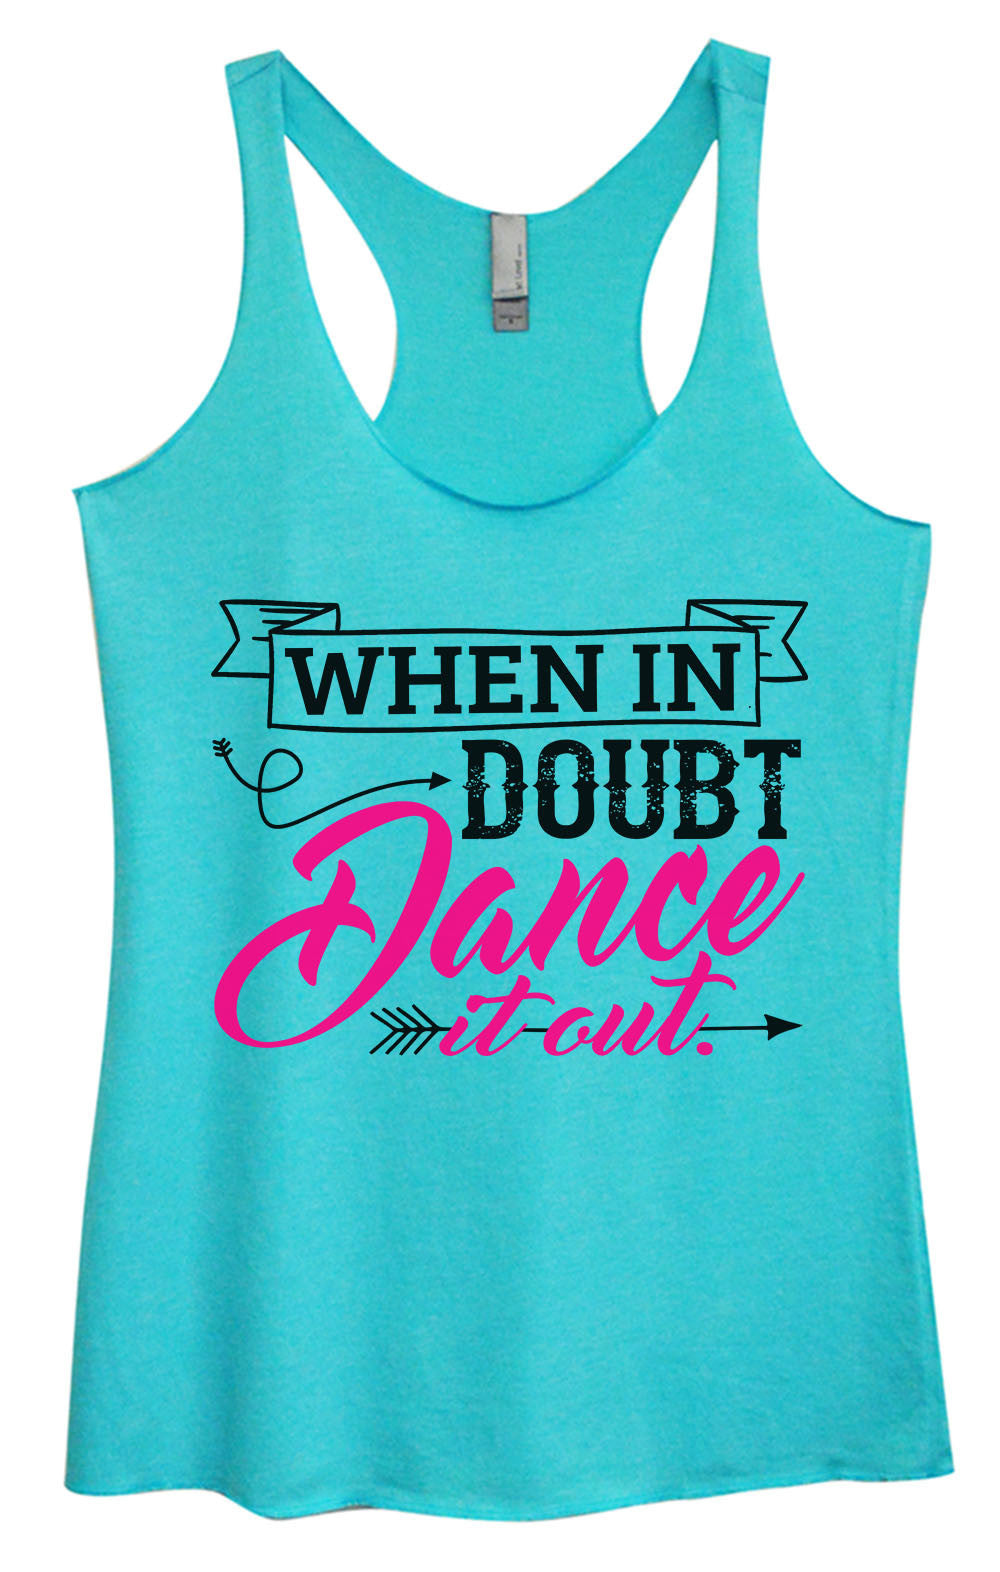 Womens Fashion Triblend Tank Top - When In Doubt Dance It Out. - Tri-1398 - Funny Shirts Tank Tops Burnouts and Triblends  - 2